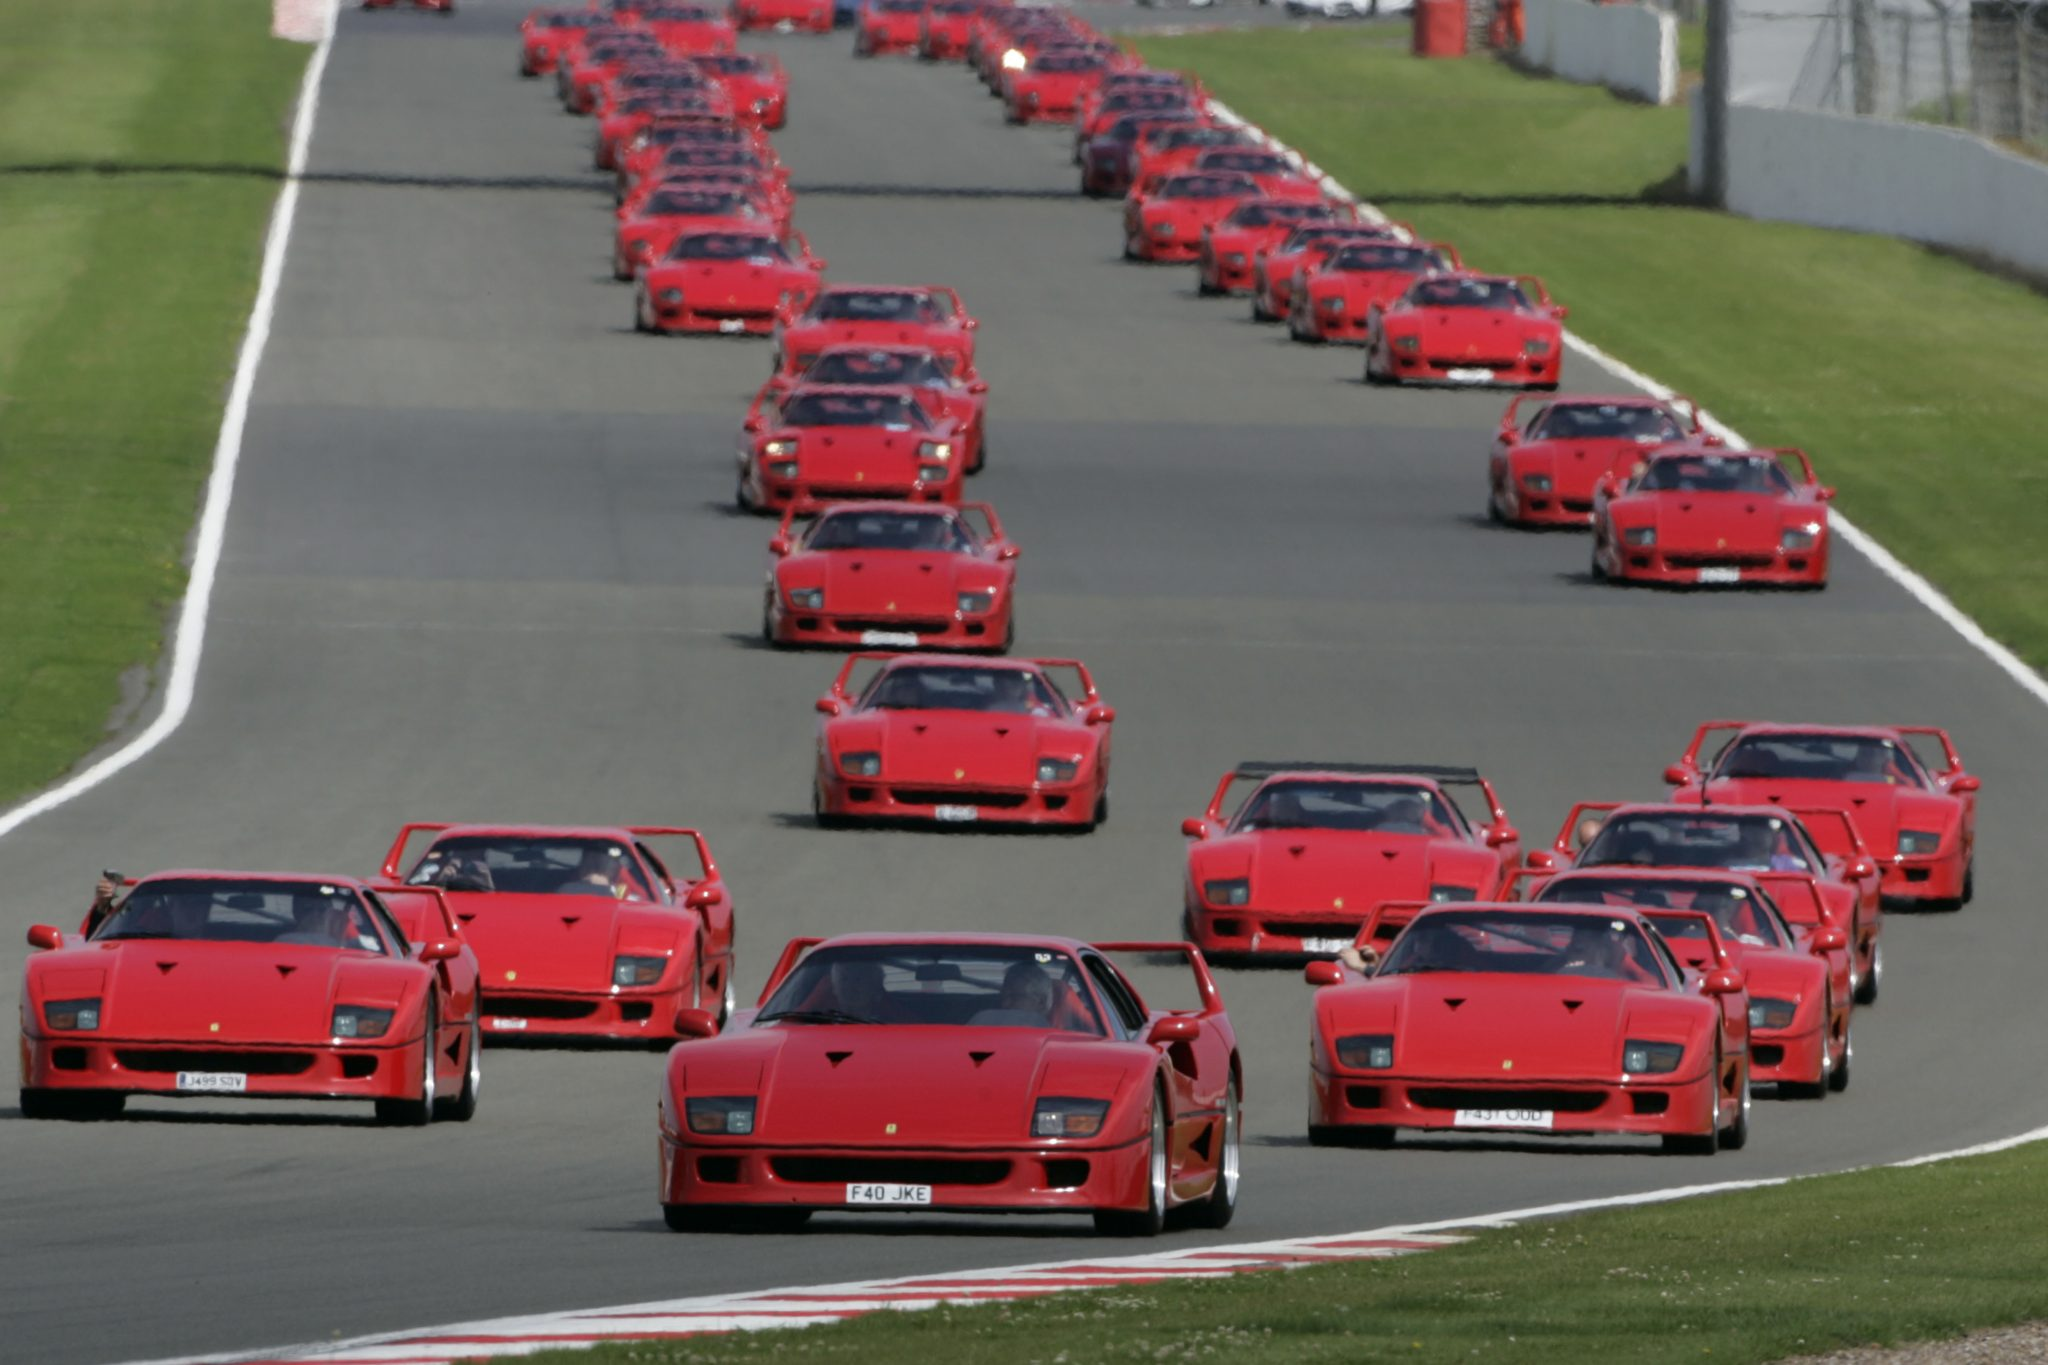 ferrari f40 celebrates 25th birthday at silverstone. Black Bedroom Furniture Sets. Home Design Ideas